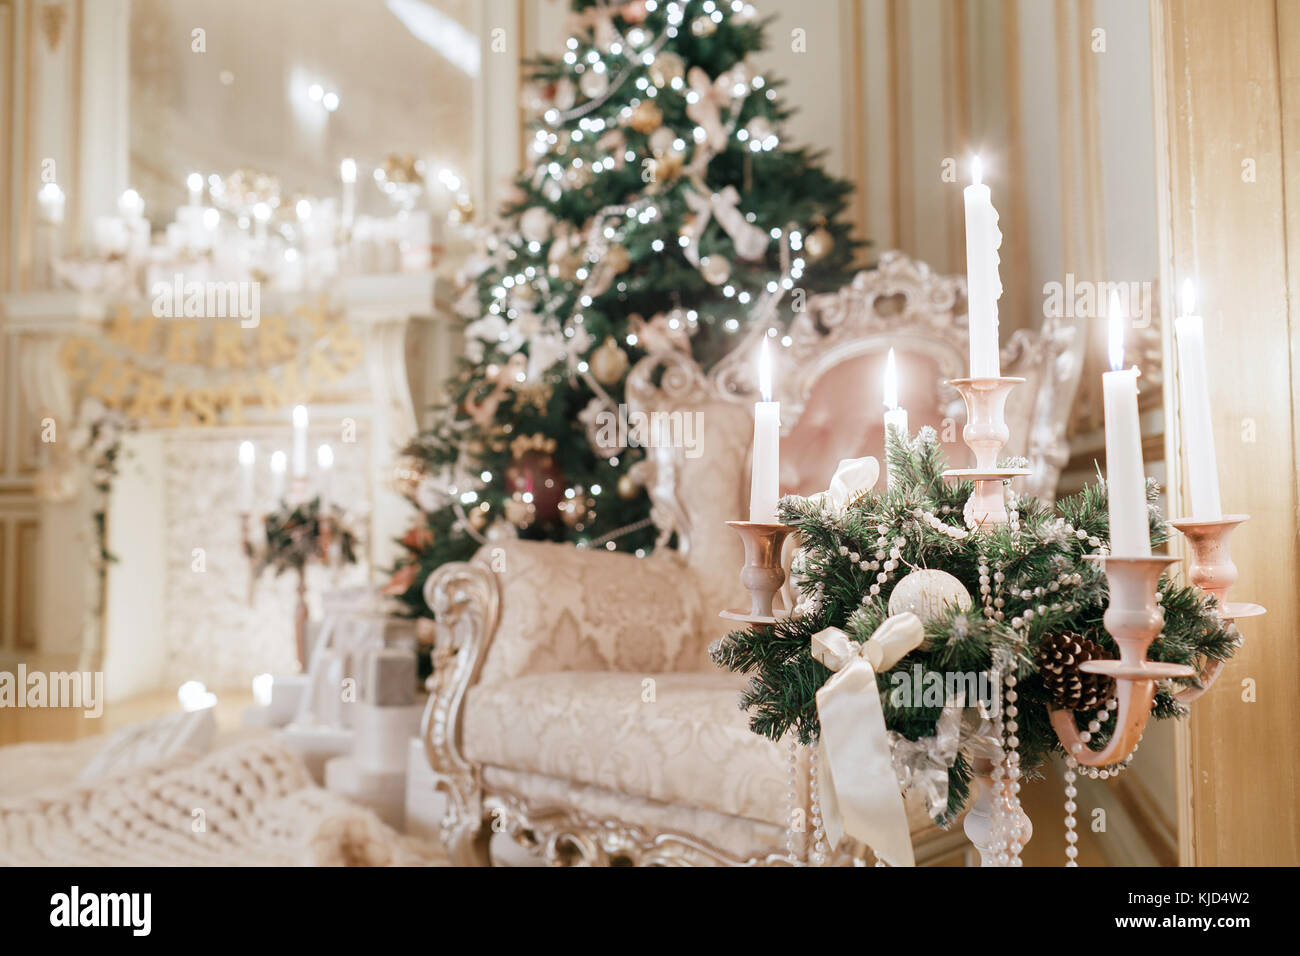 Chandelier christmas decoration stock photos chandelier the chandelier with candles in the foreground christmas evening classic apartments with a white arubaitofo Gallery